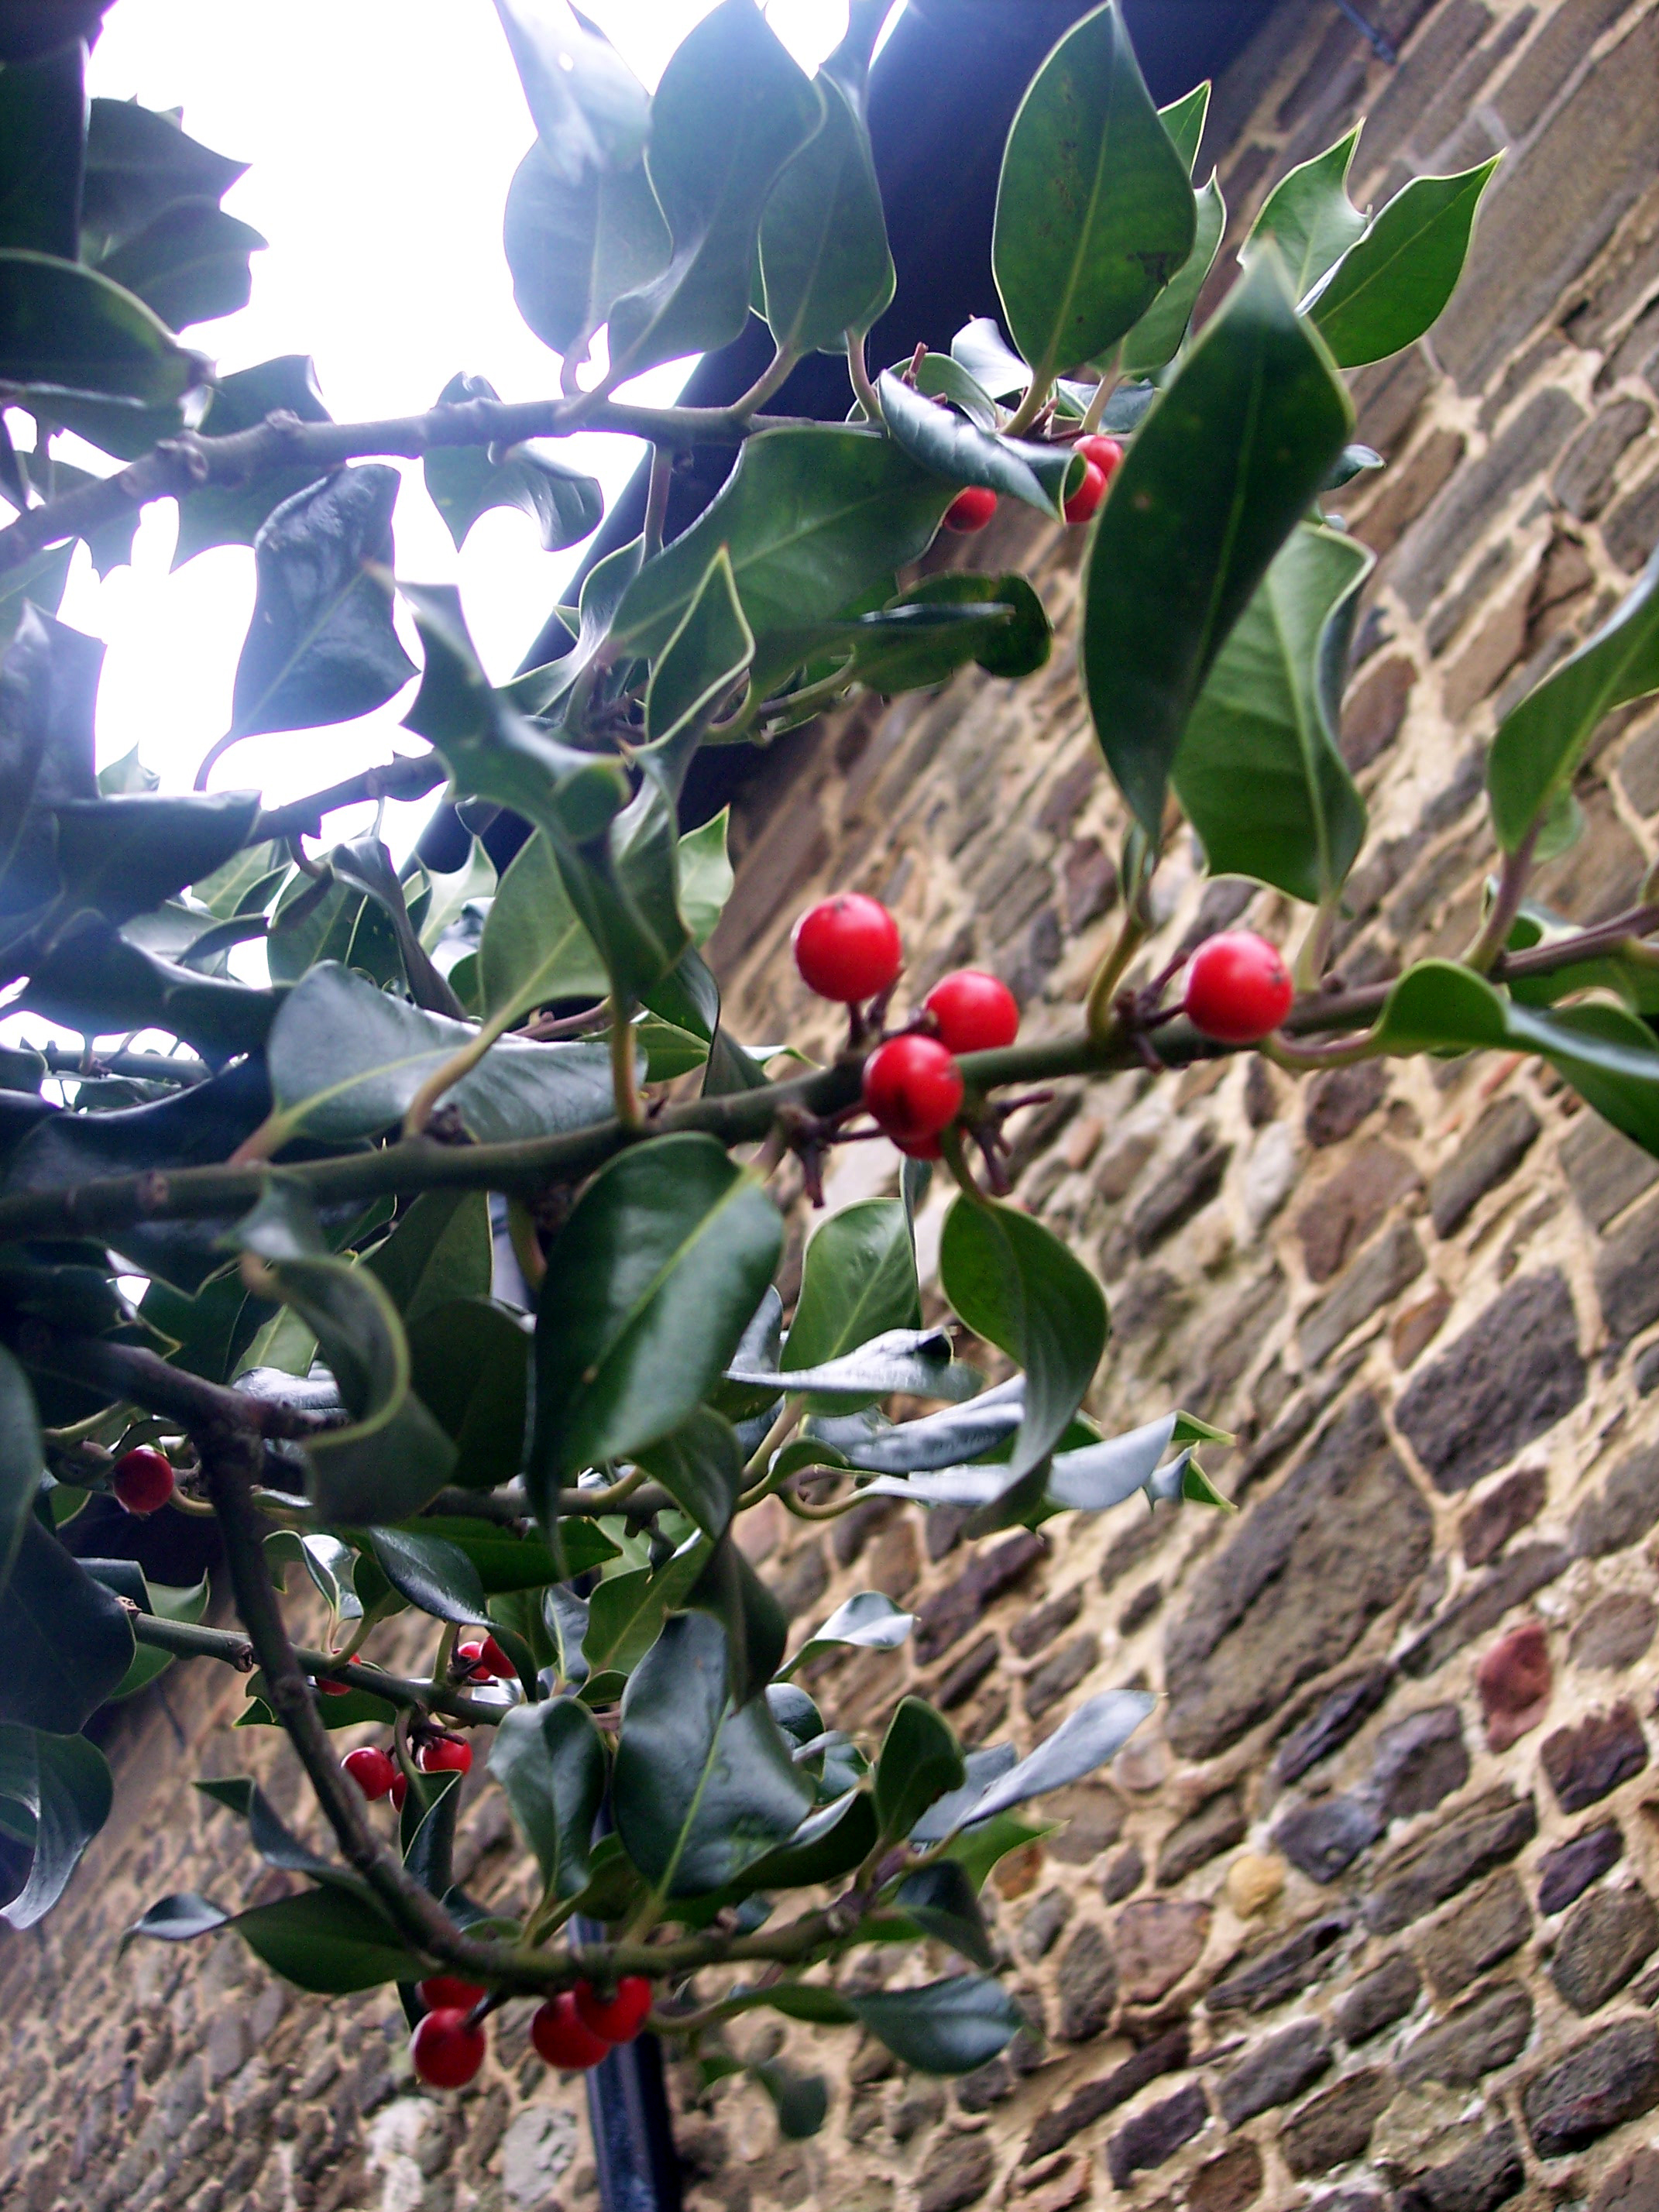 Usually a small shrub 3-15 m but holly can grow into a large tree. It has smooth thin bark, glossy green leaves with wavy edges and spines. It flowers May - August and the female plants produce bright red fruits in Autumn/Winter. Pictured at Maulden, Bedfordshire early December 2005